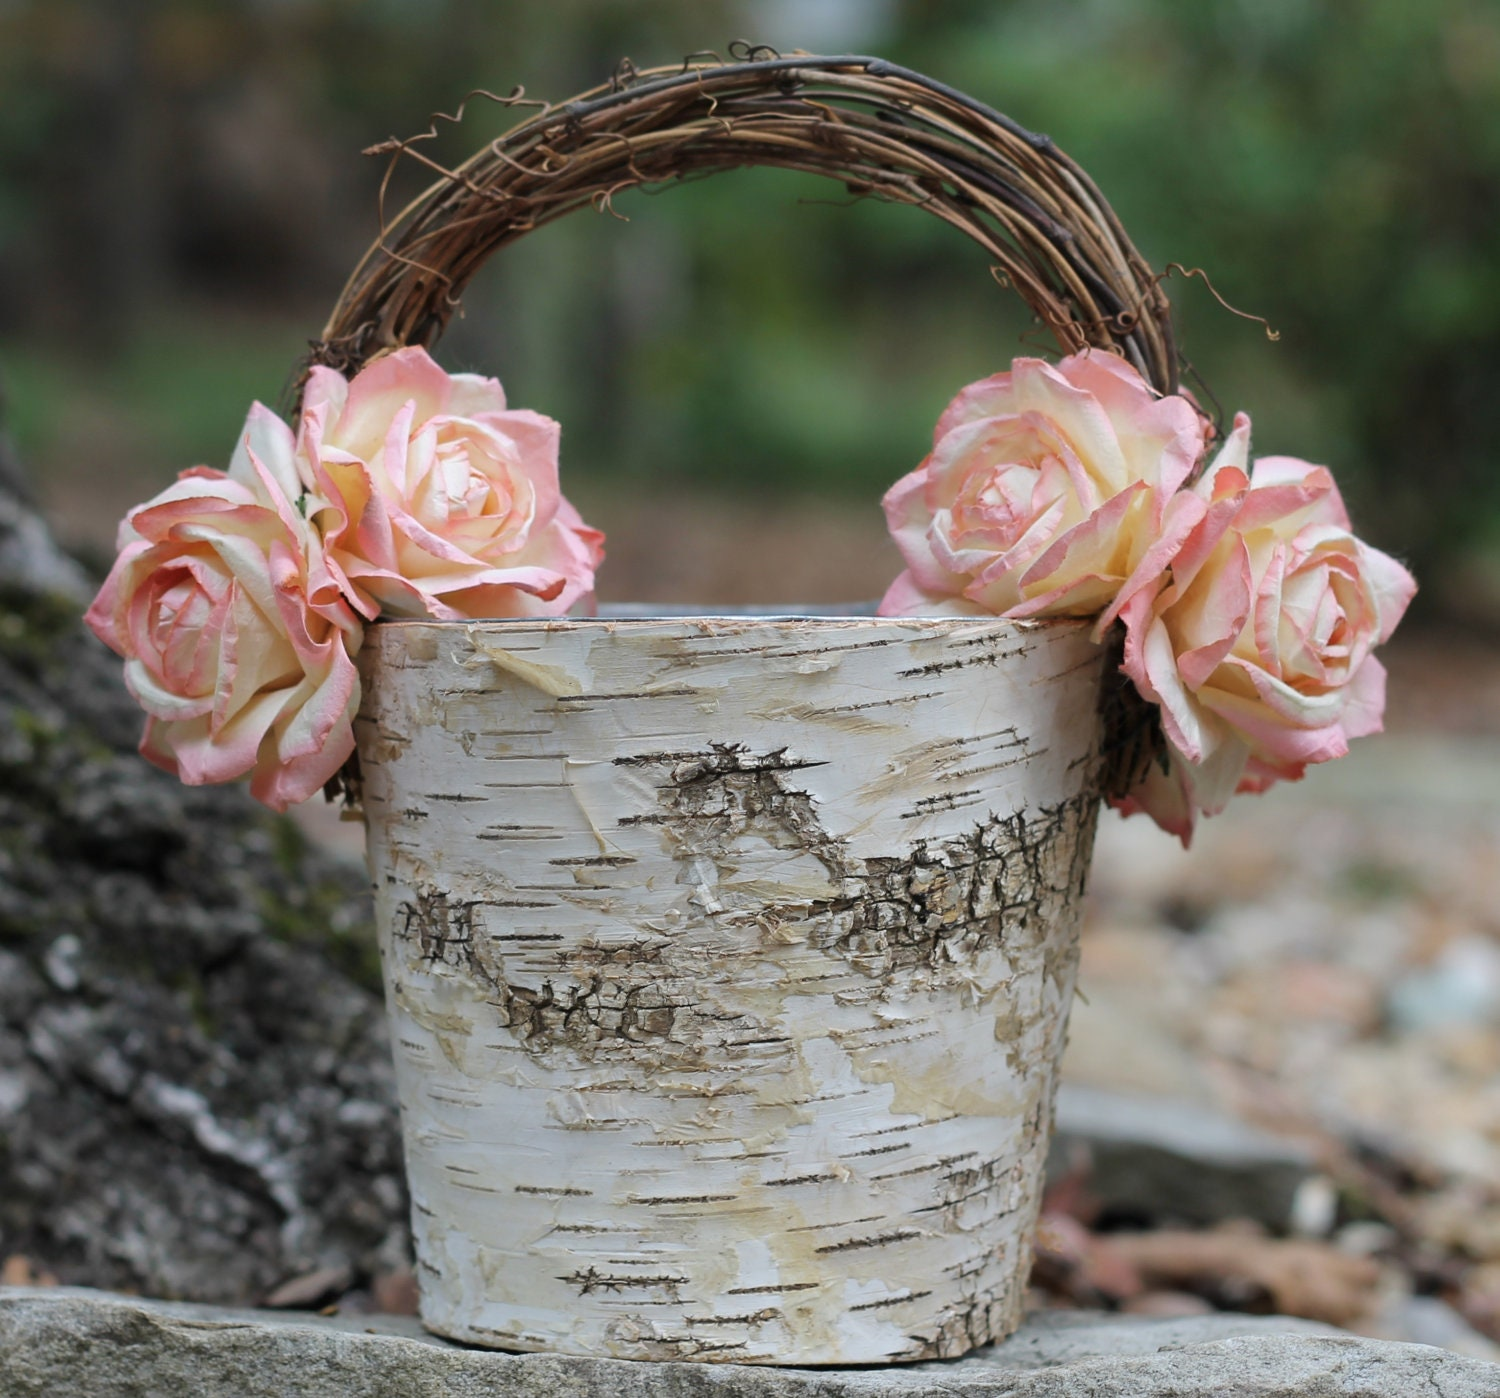 Girly Rustic Chic Bedroom: Shabby Chic Flower Girl Basket Rustic Wedding Birch With Twig